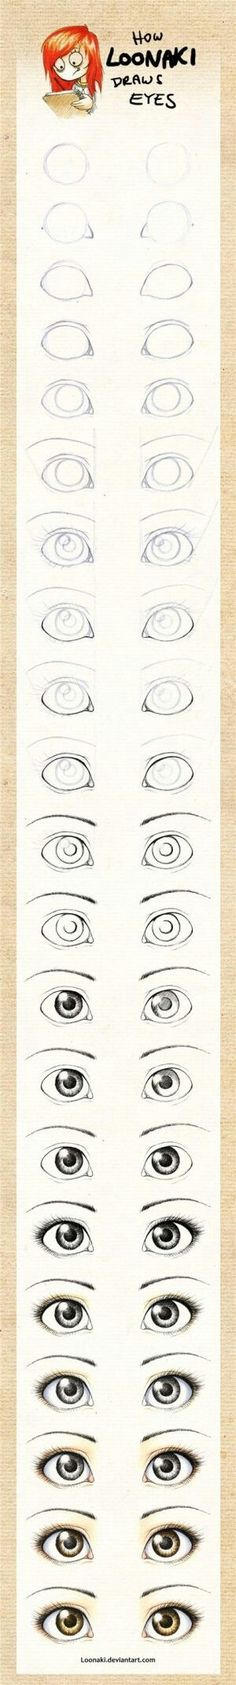 Oczy- Wow this is actually really helpful for drawing both eyes, which I can never do!